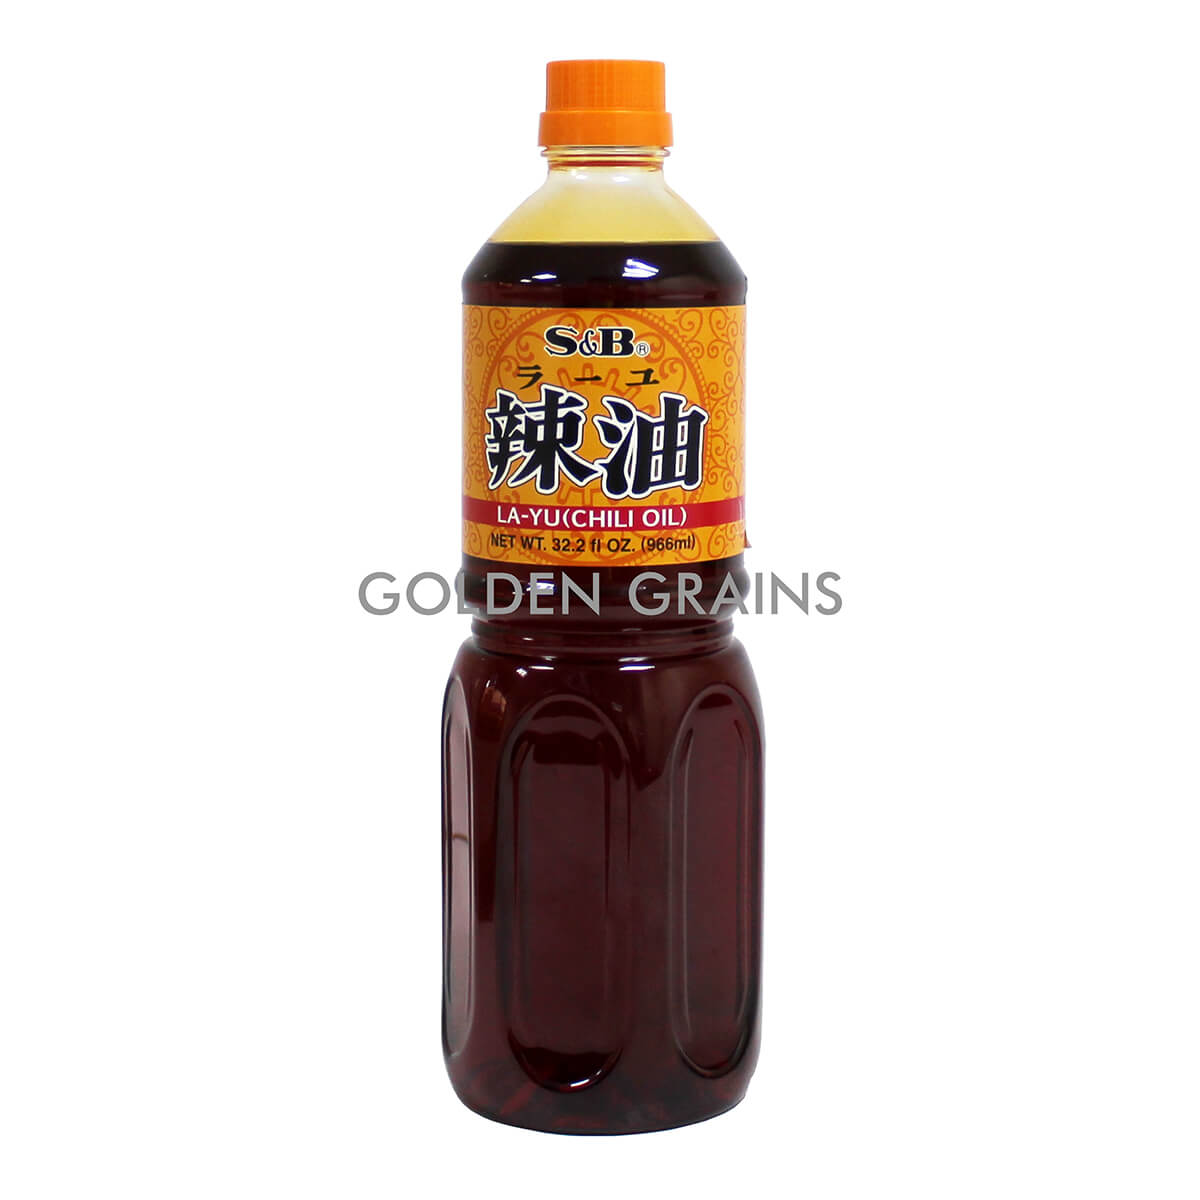 Golden Grains Dubai Export - S&B - Chili Oil - Front.jpg